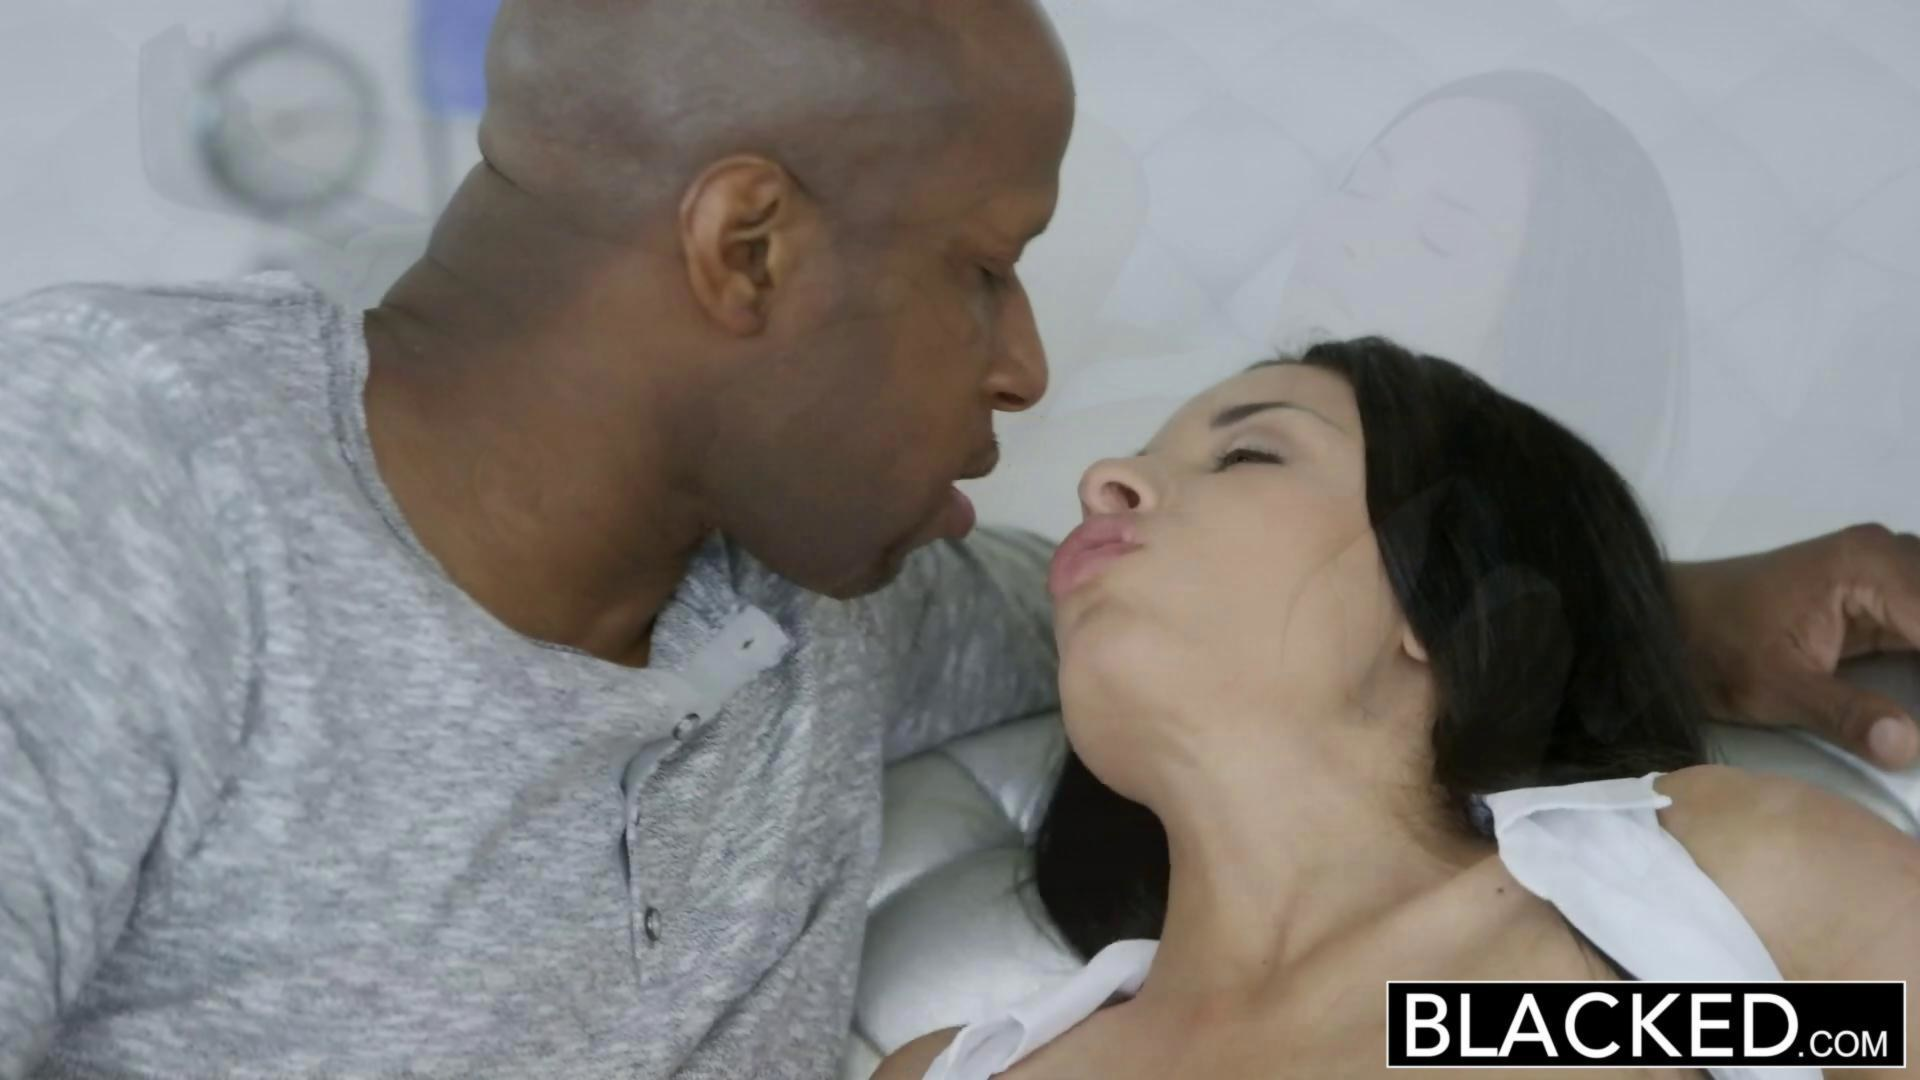 French interracial sex